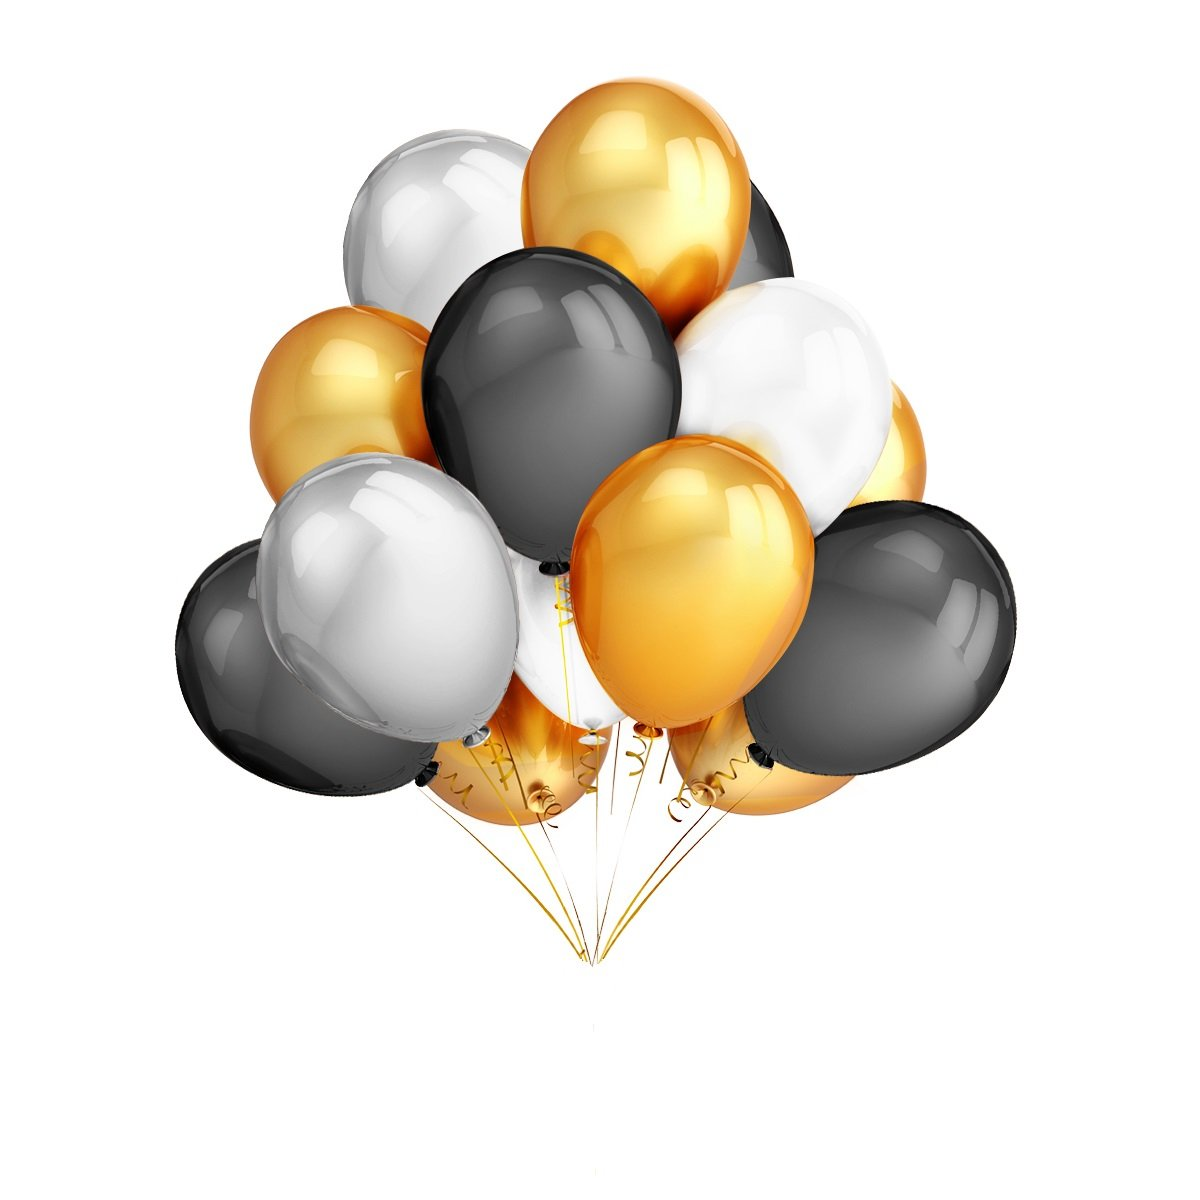 TeePolly 120 Pack 12 Inches Latex Party Decorate Balloons(Gold and Silver and Black and White )- Party Decoration Accessories & Party Favors